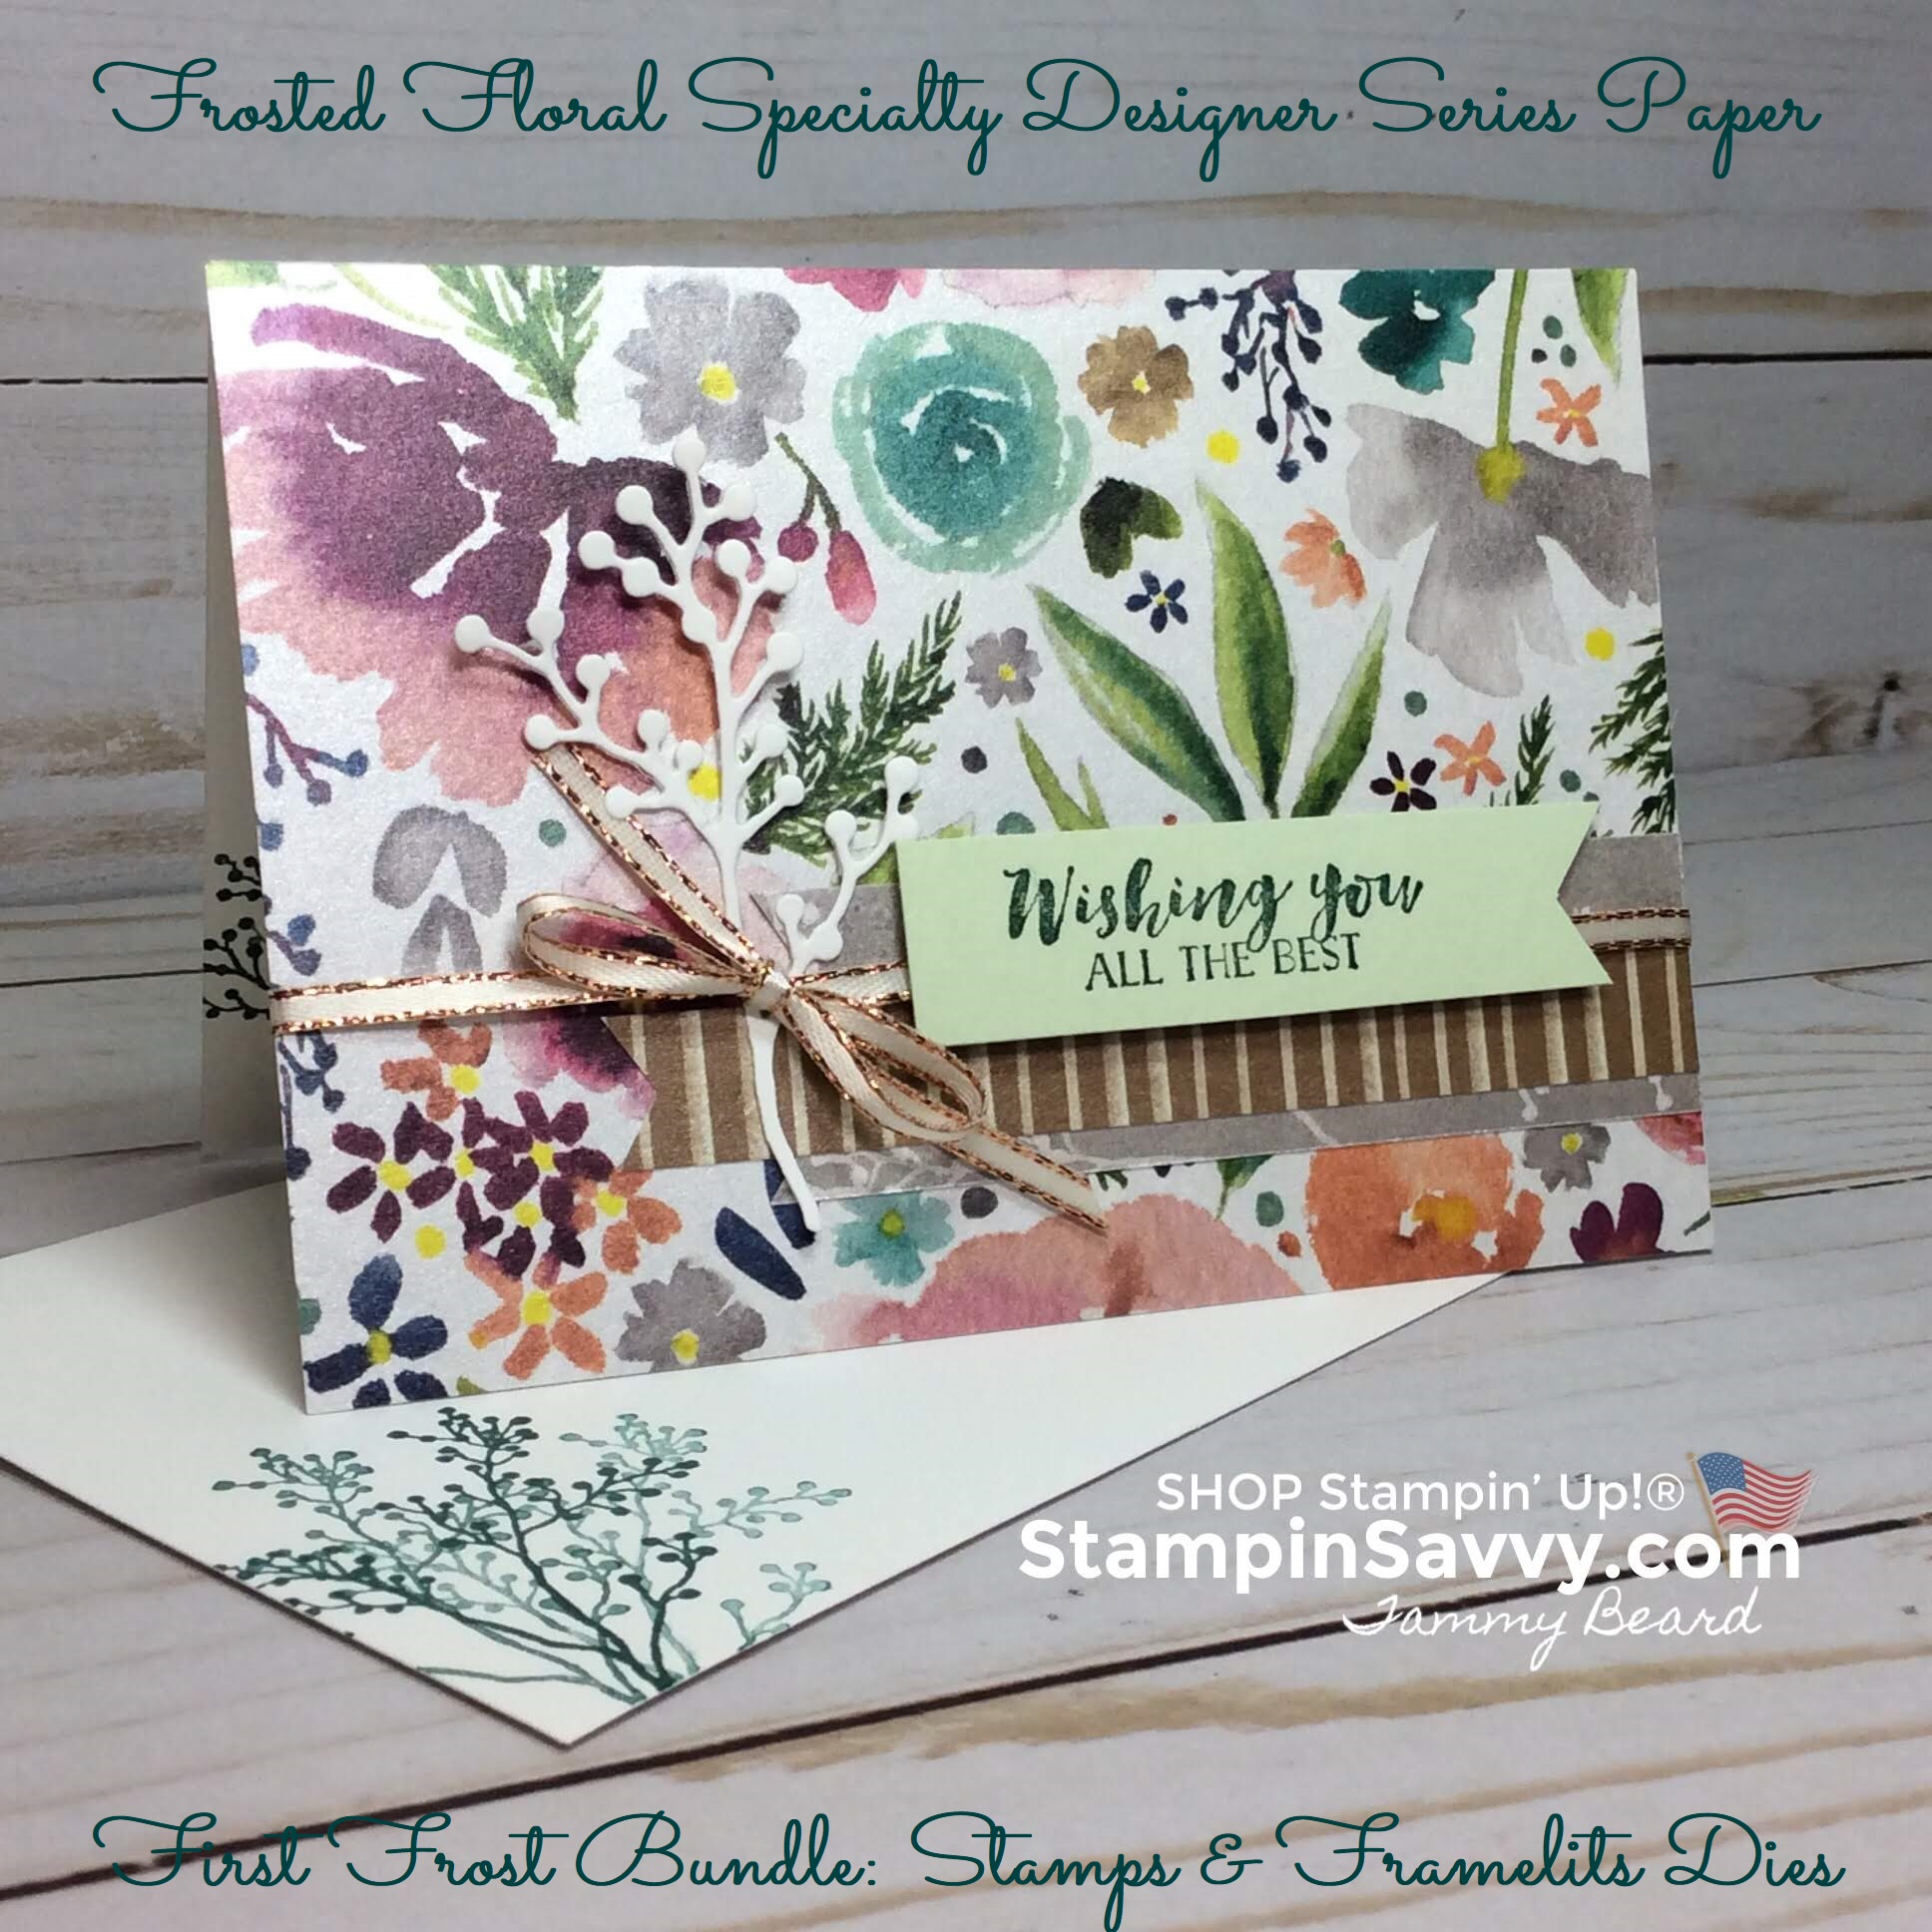 frosted floral dsp, first frost bundle, frosted floral suite, card ideas, stampin up, stampinup, stampin savvy, tammy beard